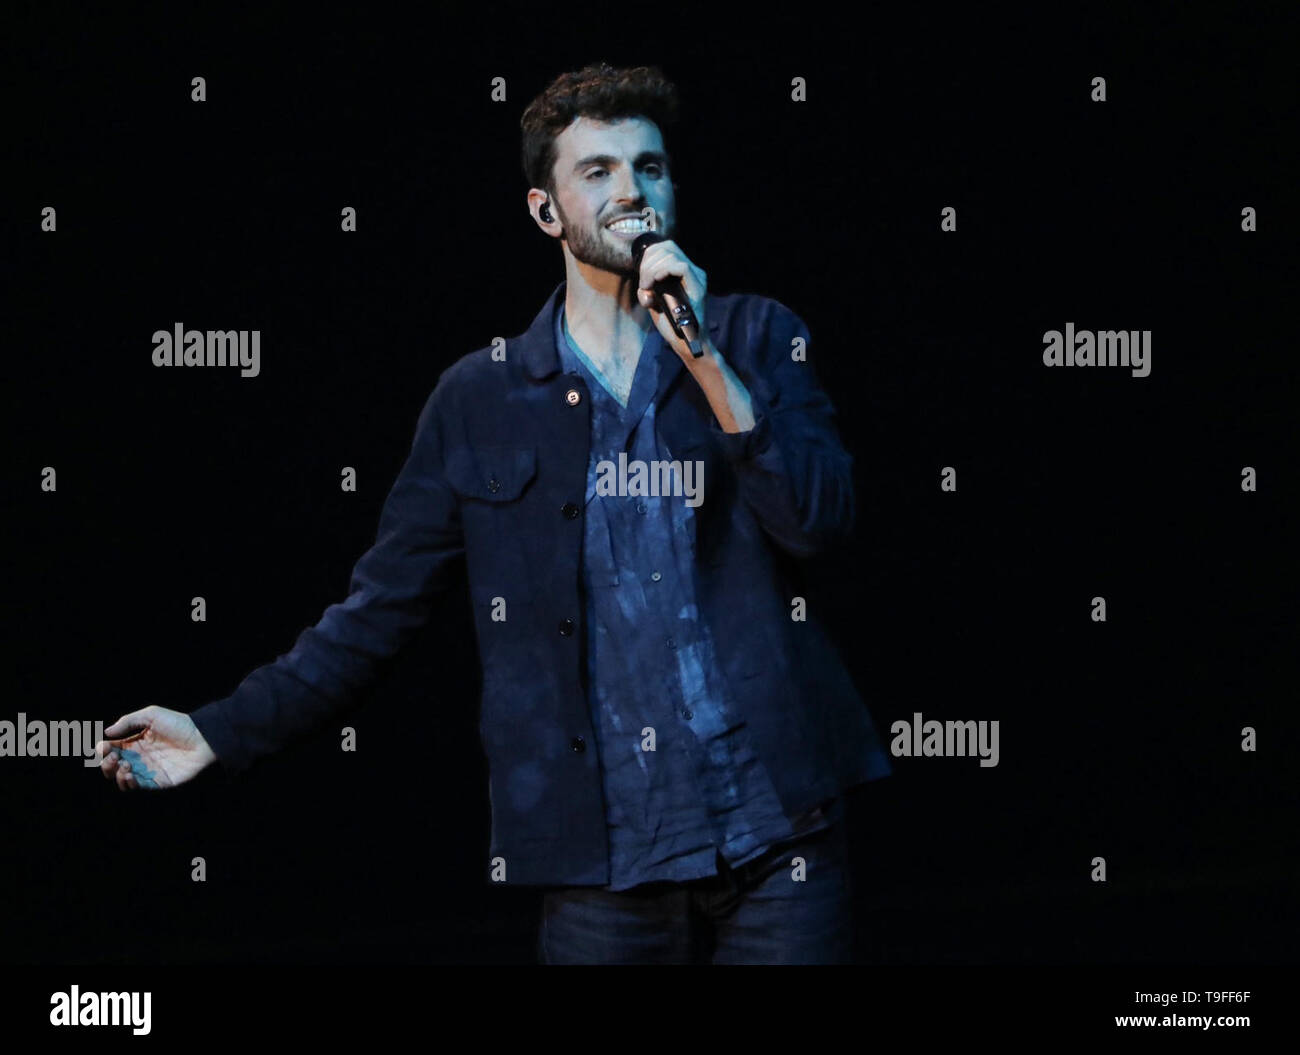 Tel Aviv, Israel. 19th May, 2019. Duncan Laurence from the Netherlands, winner of the Eurovision Song Contest (ESC) 2019, sings his winning song 'Arcade'. Credit: Ilia Yefimovich/dpa/Alamy Live News - Stock Image